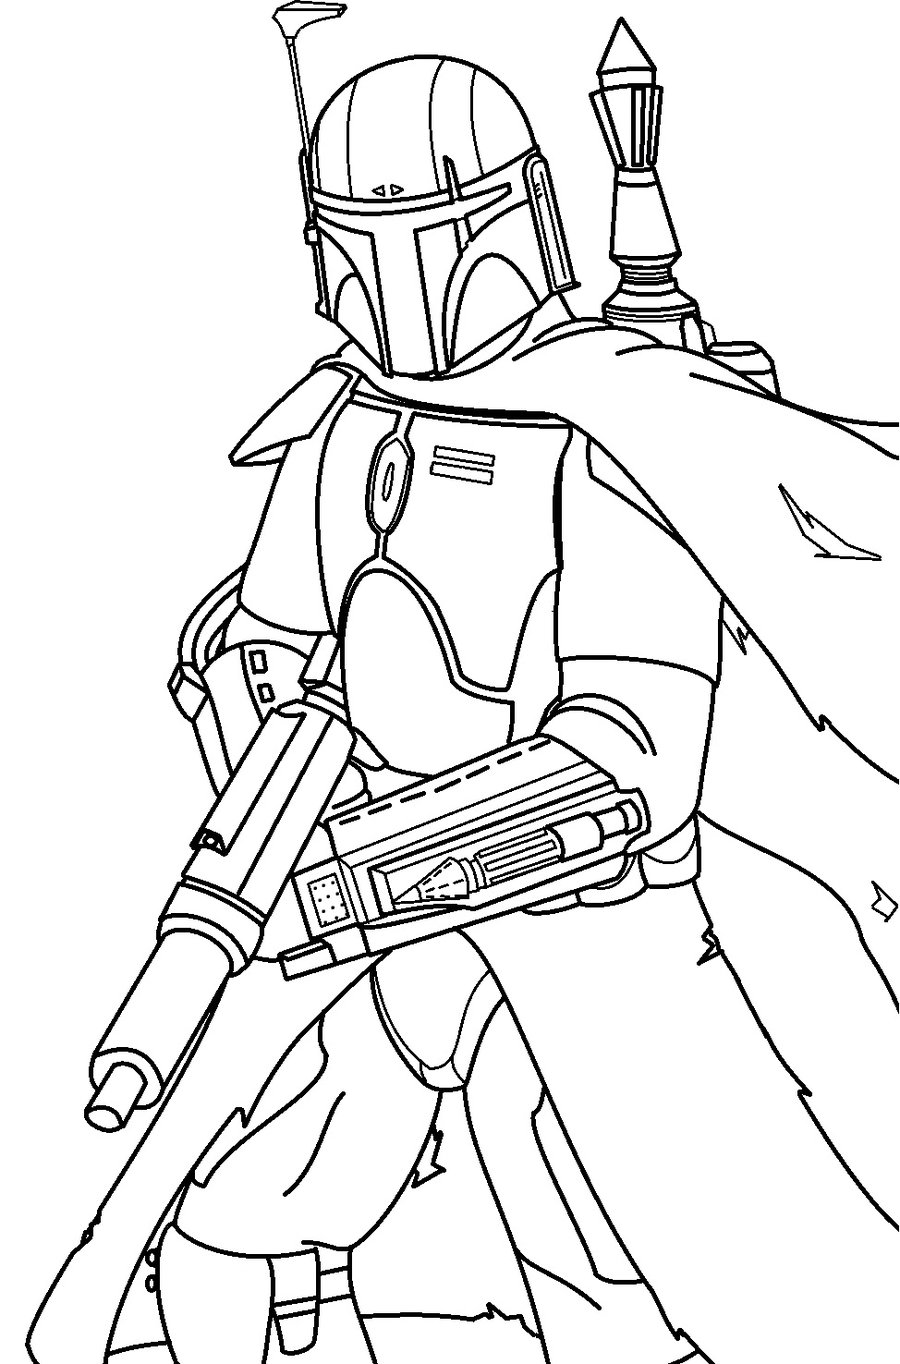 Charming Boba Fett Helmet Coloring Page Photos - Entry Level Resume ...